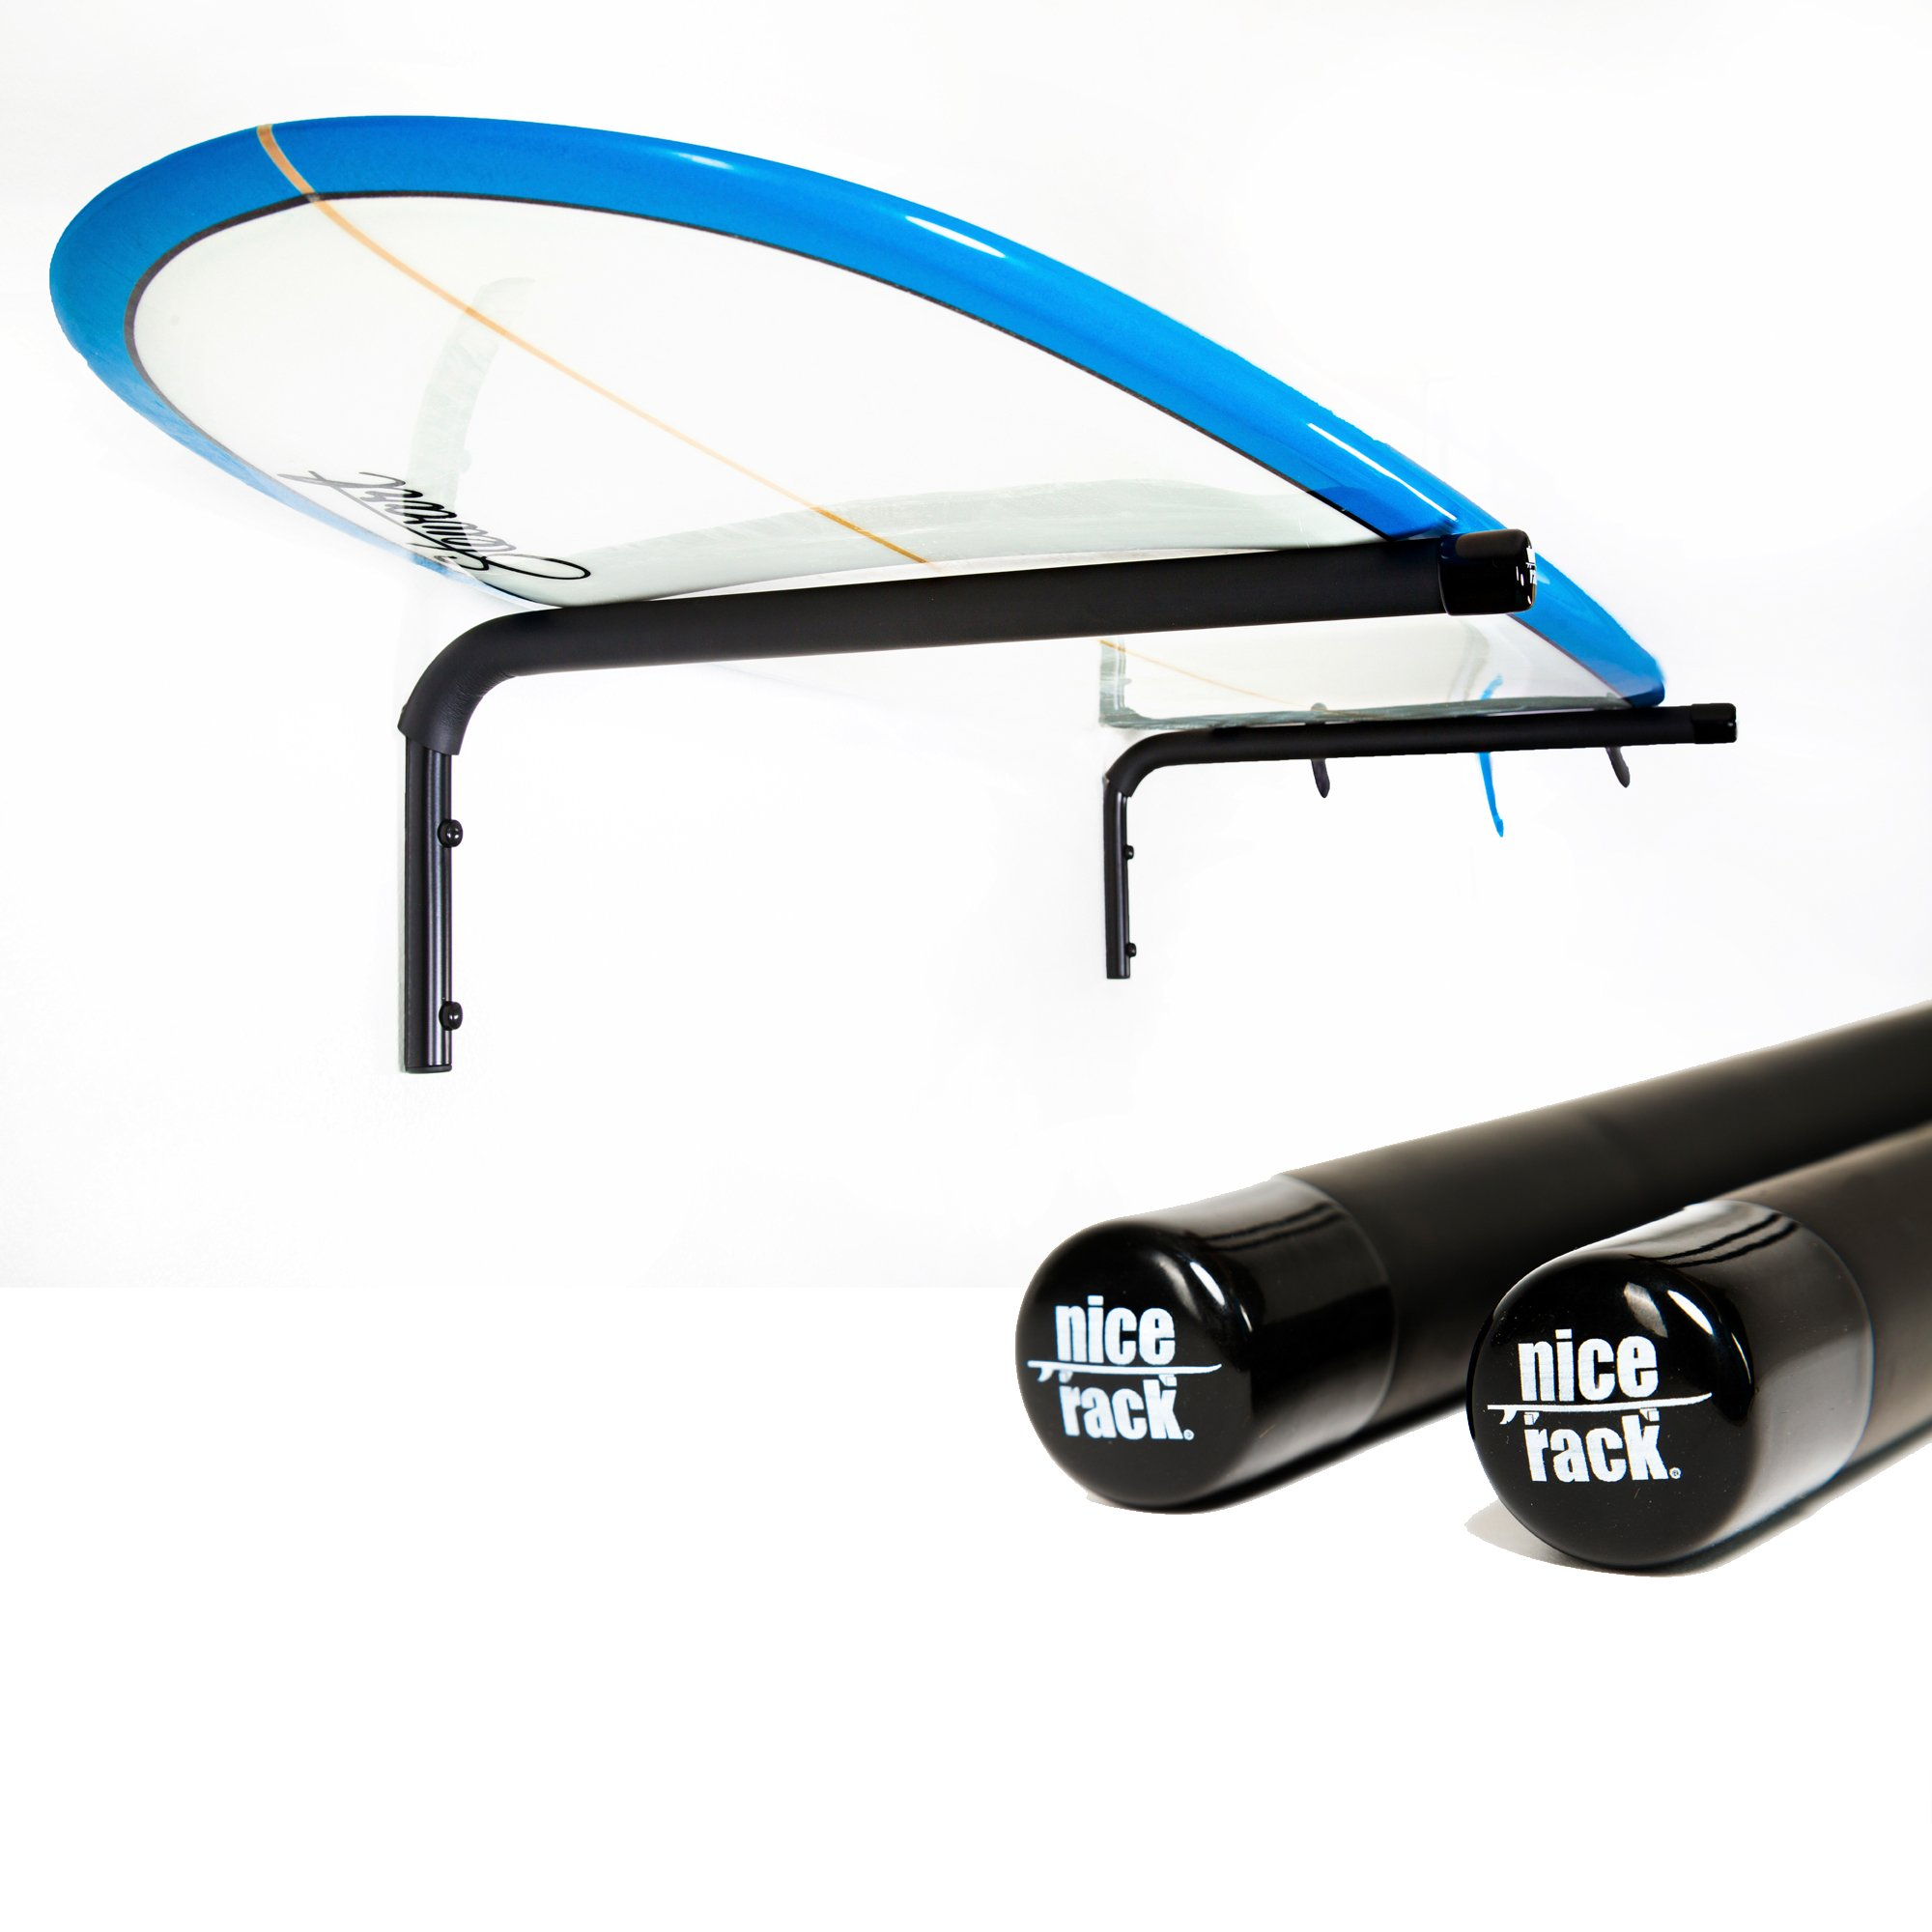 Reeflection NICE RACK - 2 Pack - Stand Up Paddle | SUP | Longboard - Horizontal Rack - High Strength (2) by Reeflection